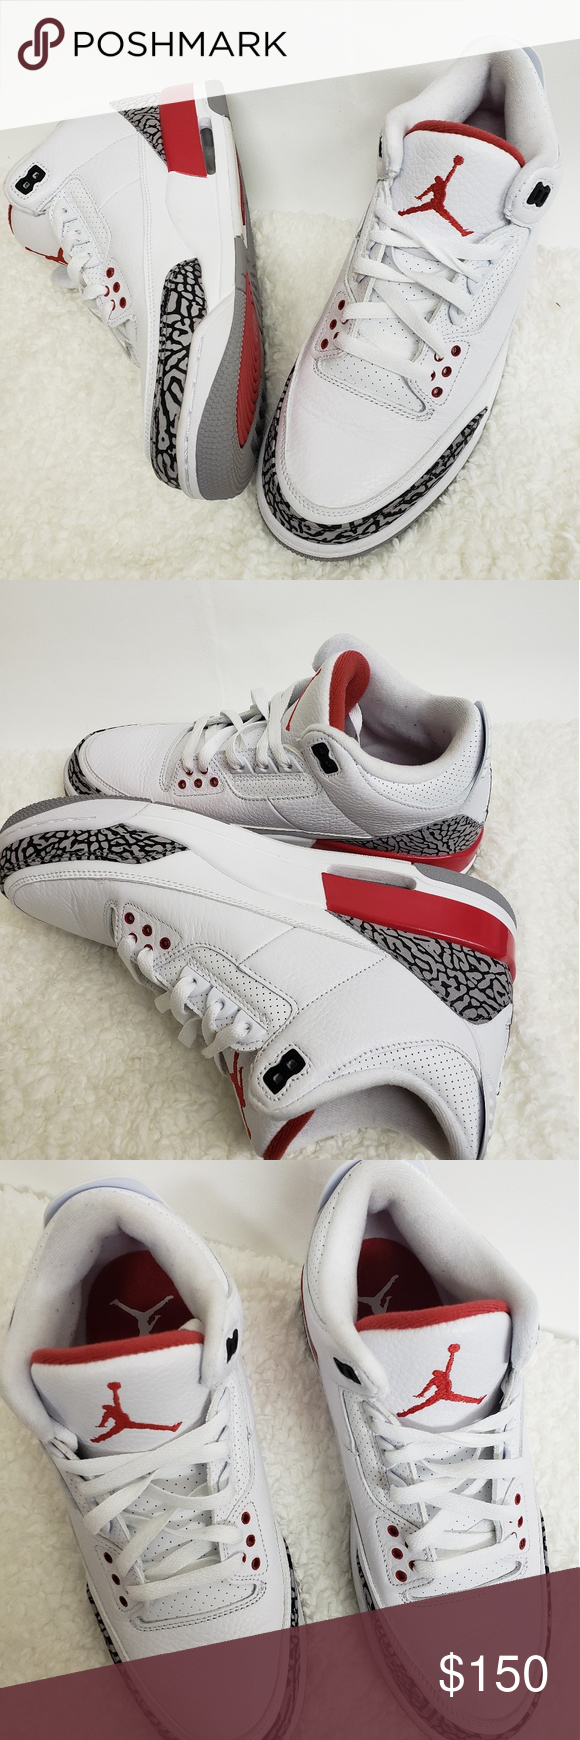 ac3b462a5ea0 Air Jordan retro 3 Katrina s size 9.5 These are Air Jordan 3 Katrina s in  almost perfect condition. The right shoe has a small blemish on the right  side of ...